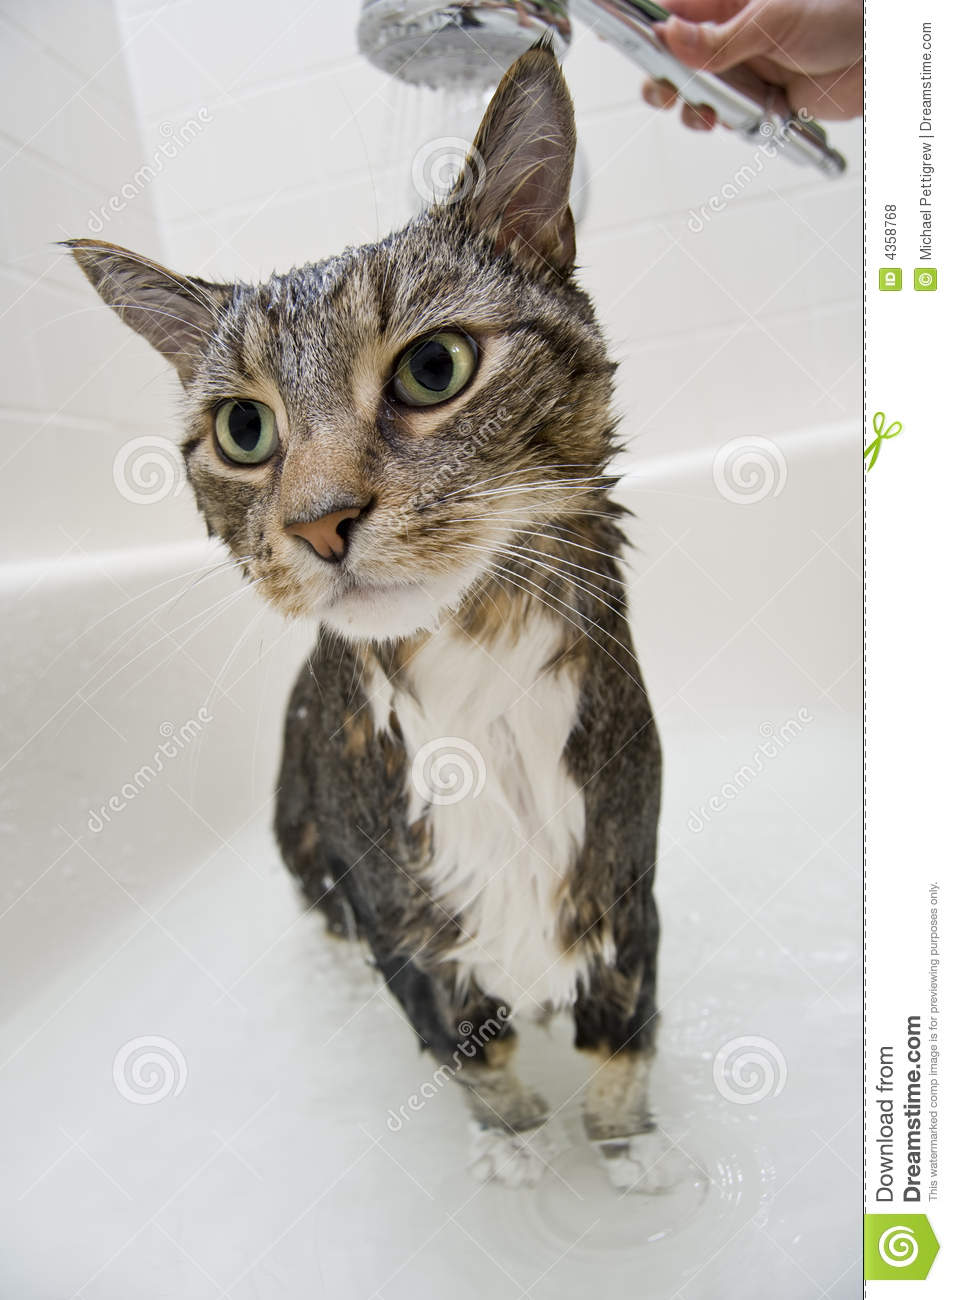 Cat In The Shower Royalty Free Stock Photos Image 4358768